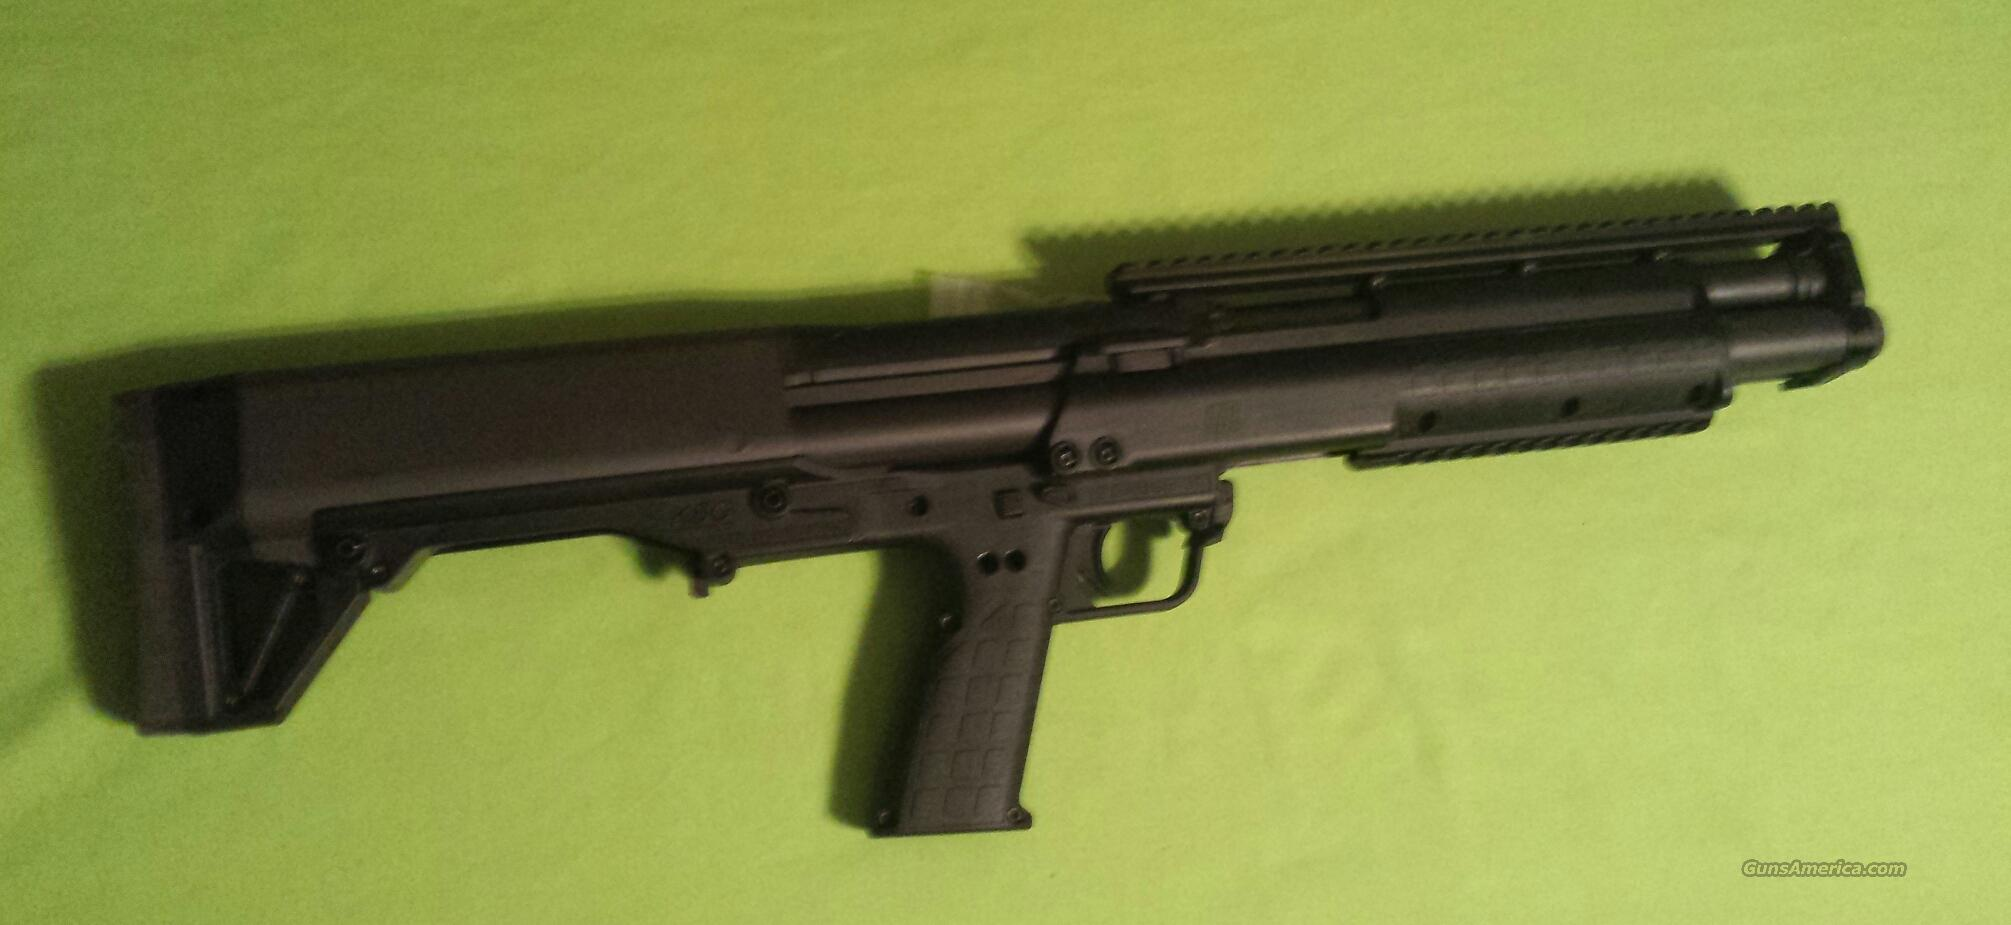 Kel Tec KELTEC KSG Shotgun Factory New 14RDS BLACK  Guns > Shotguns > Kel-Tec Shotguns > KSG